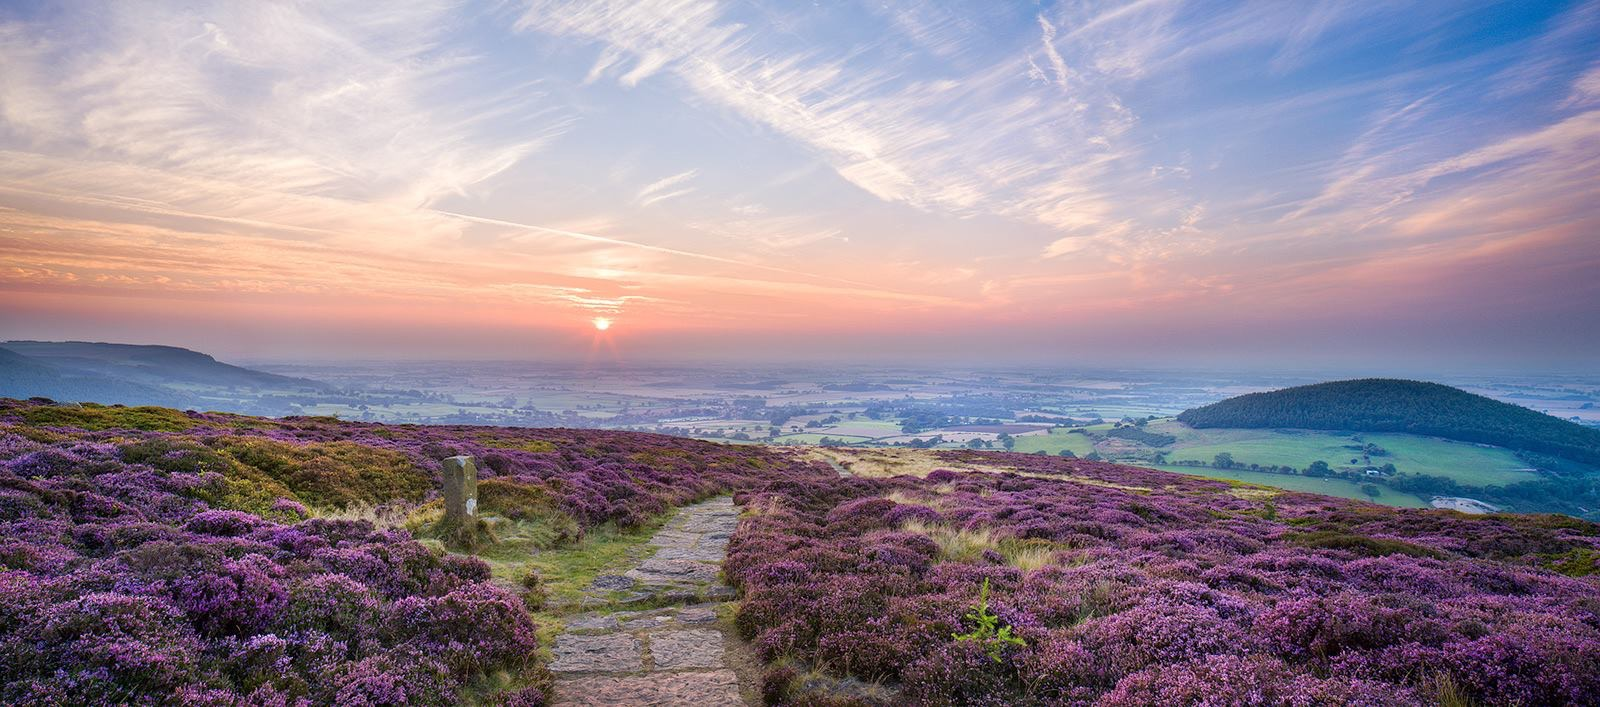 North York Moors - 5 minutes